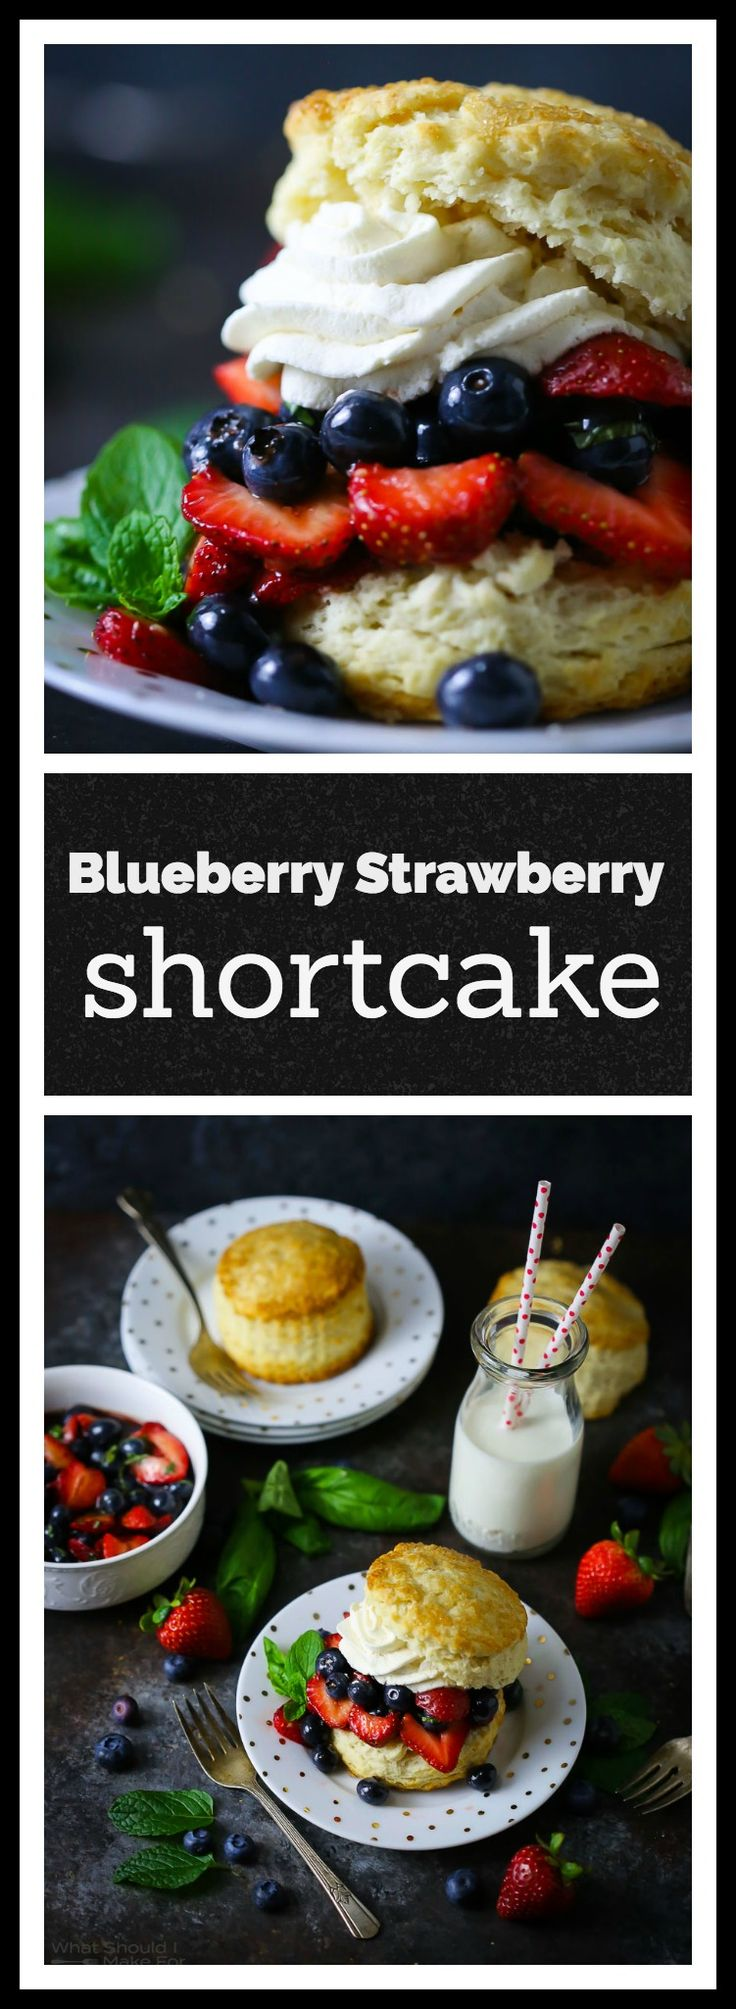 All hail the queen of summer desserts! Classic strawberry shortcake is 4th of July ready with the addition of plump blueberries and a little zing from balsamic vinegar and herbs.